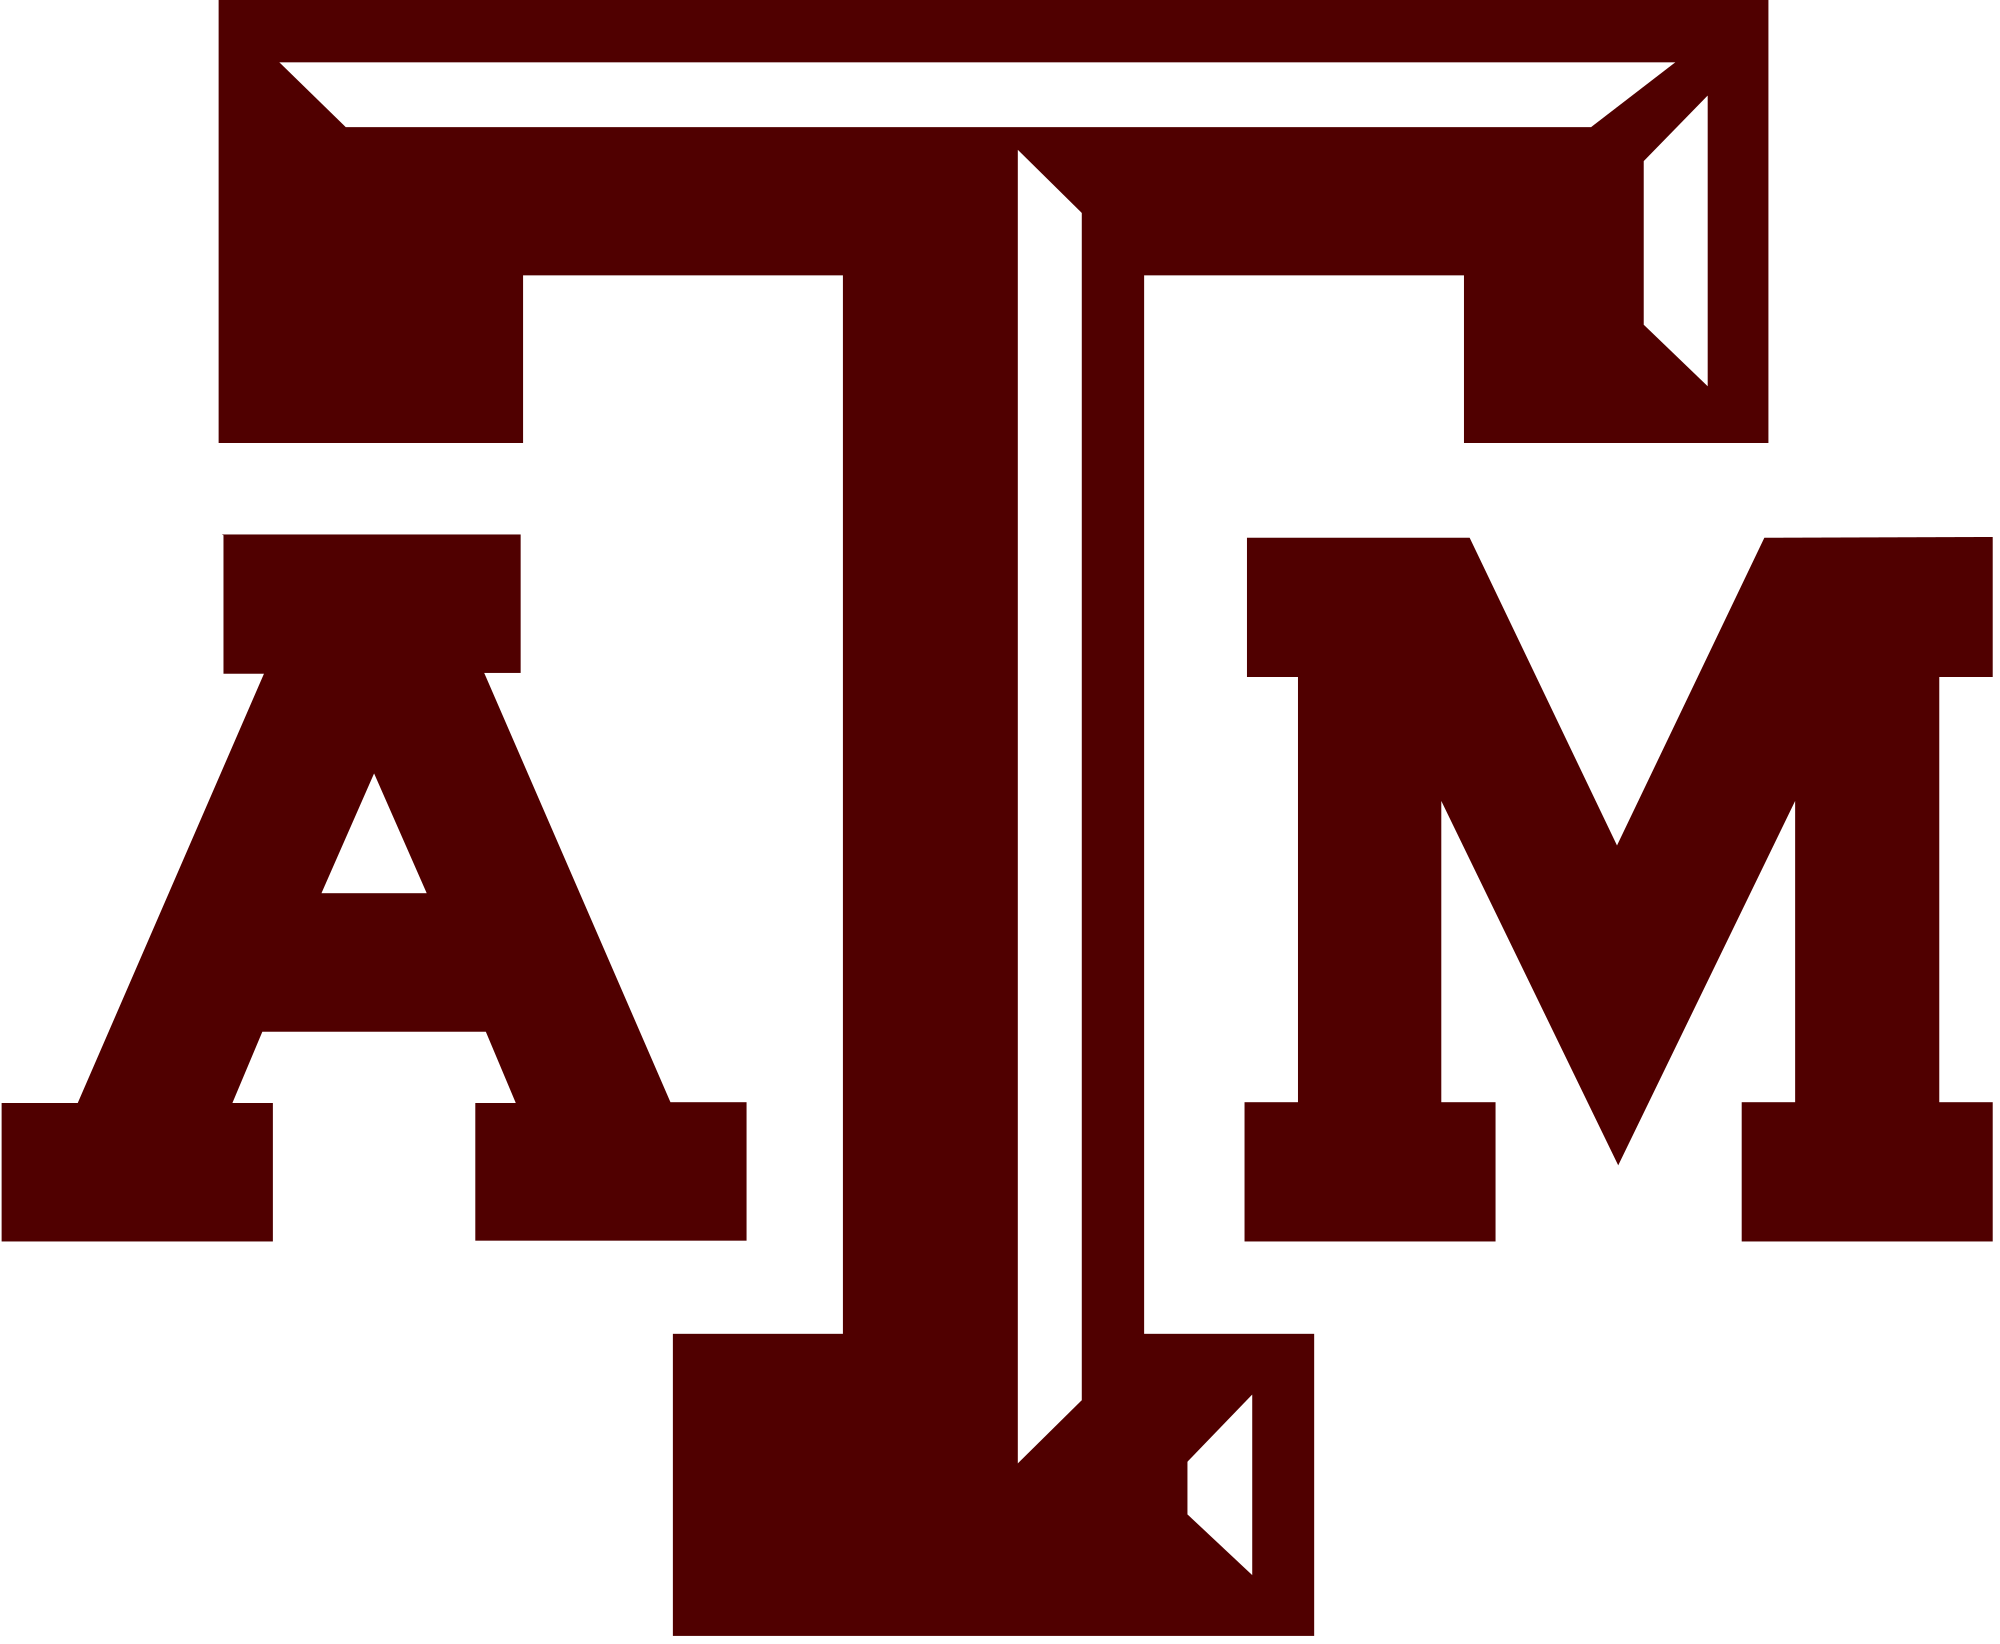 Basketball seal clipart distressed clip freeuse File:Texas A&M University aTm logo.svg - Wikimedia Commons | Family ... clip freeuse